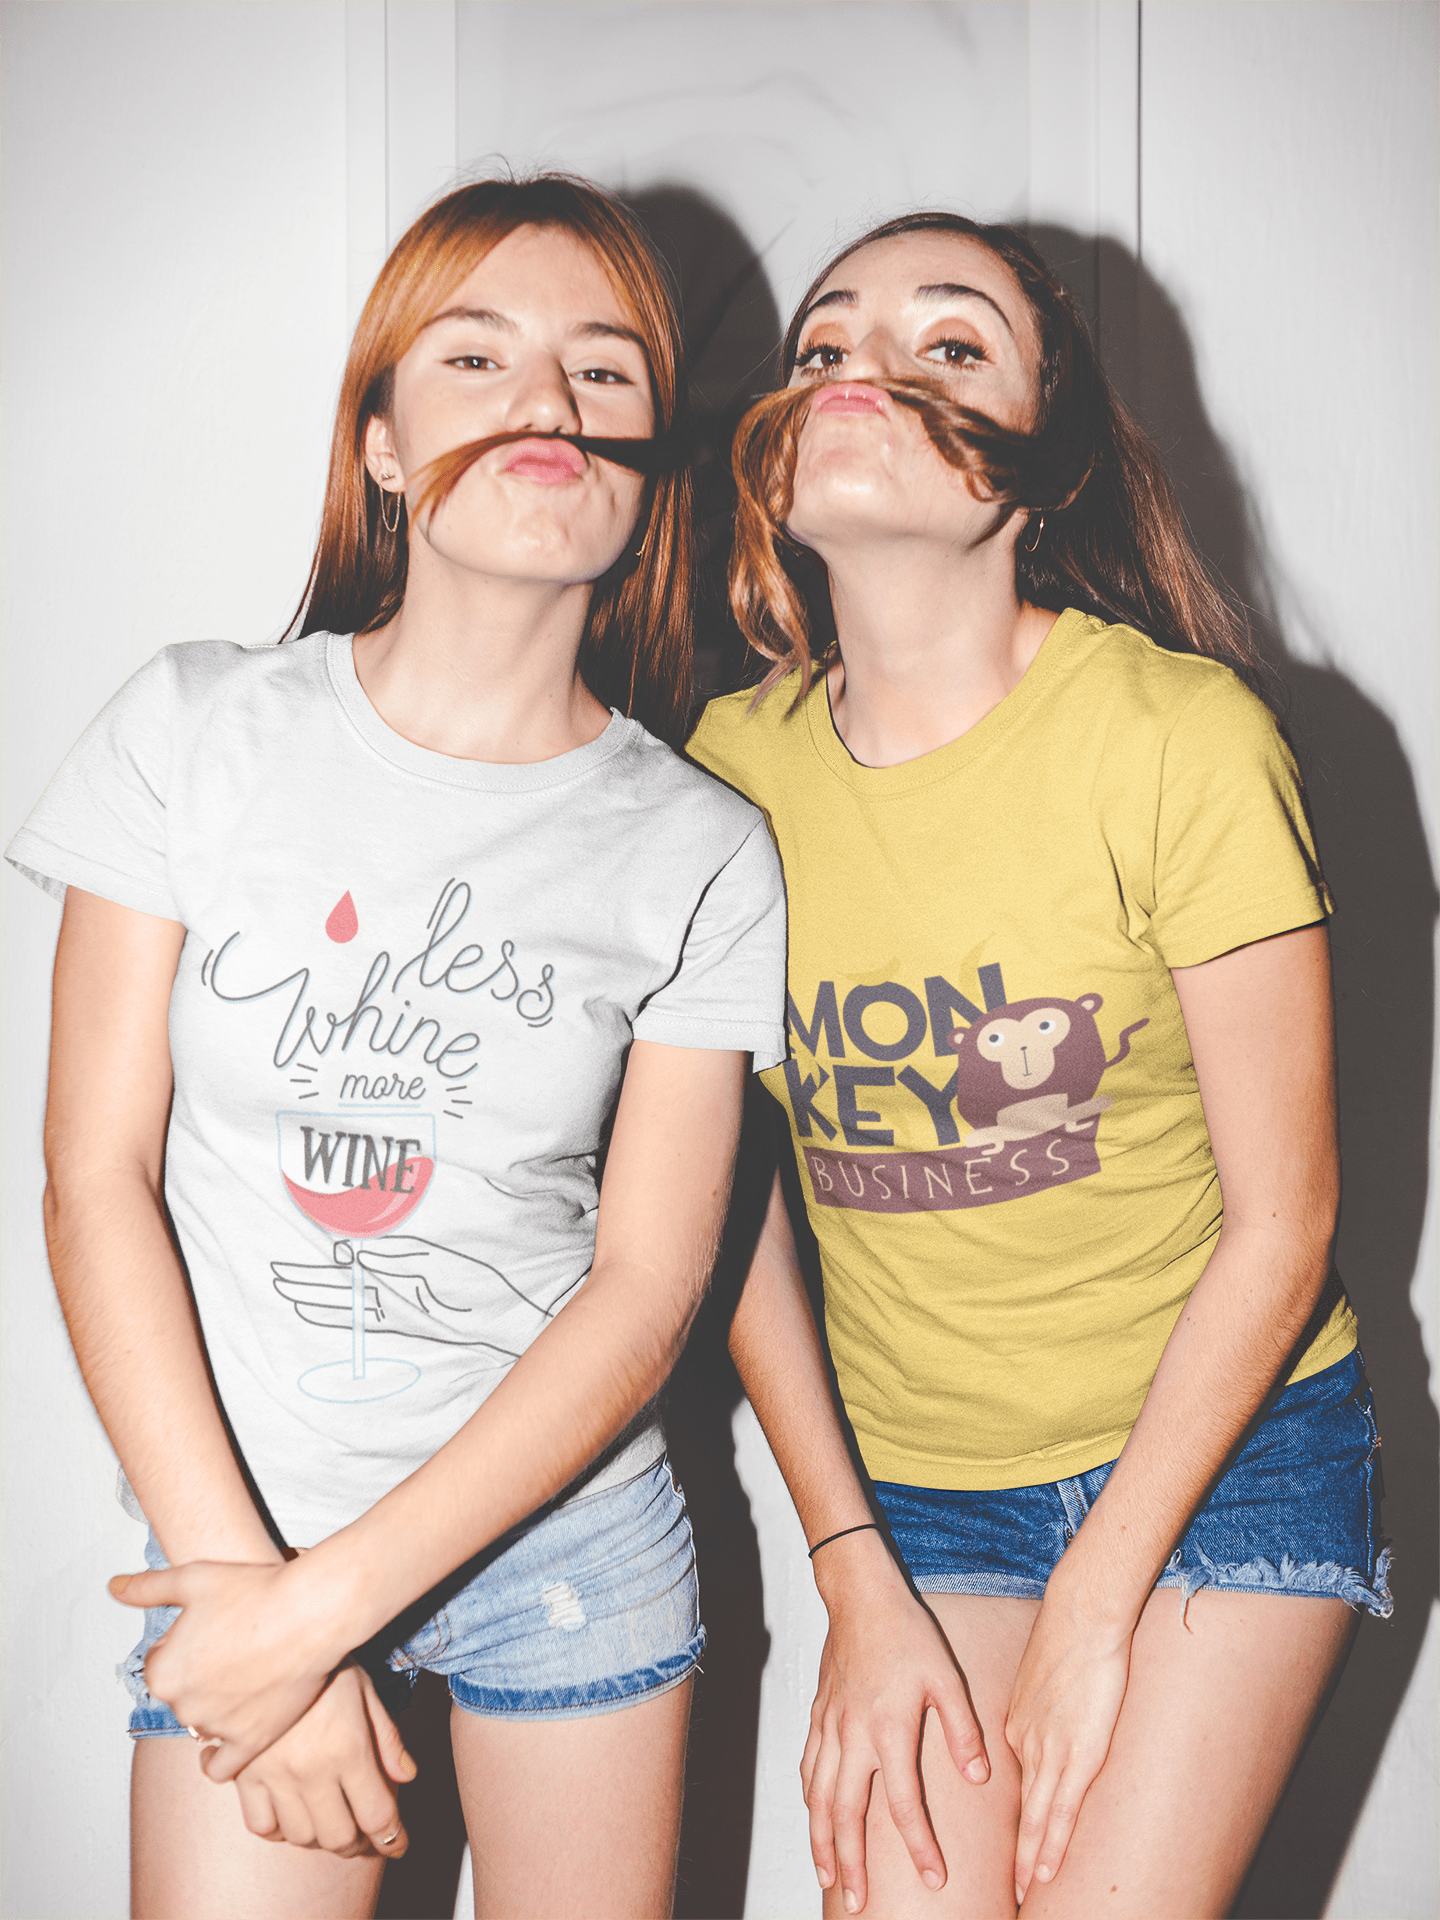 2018 Latest Trends in T-shirt Designs placeit 14